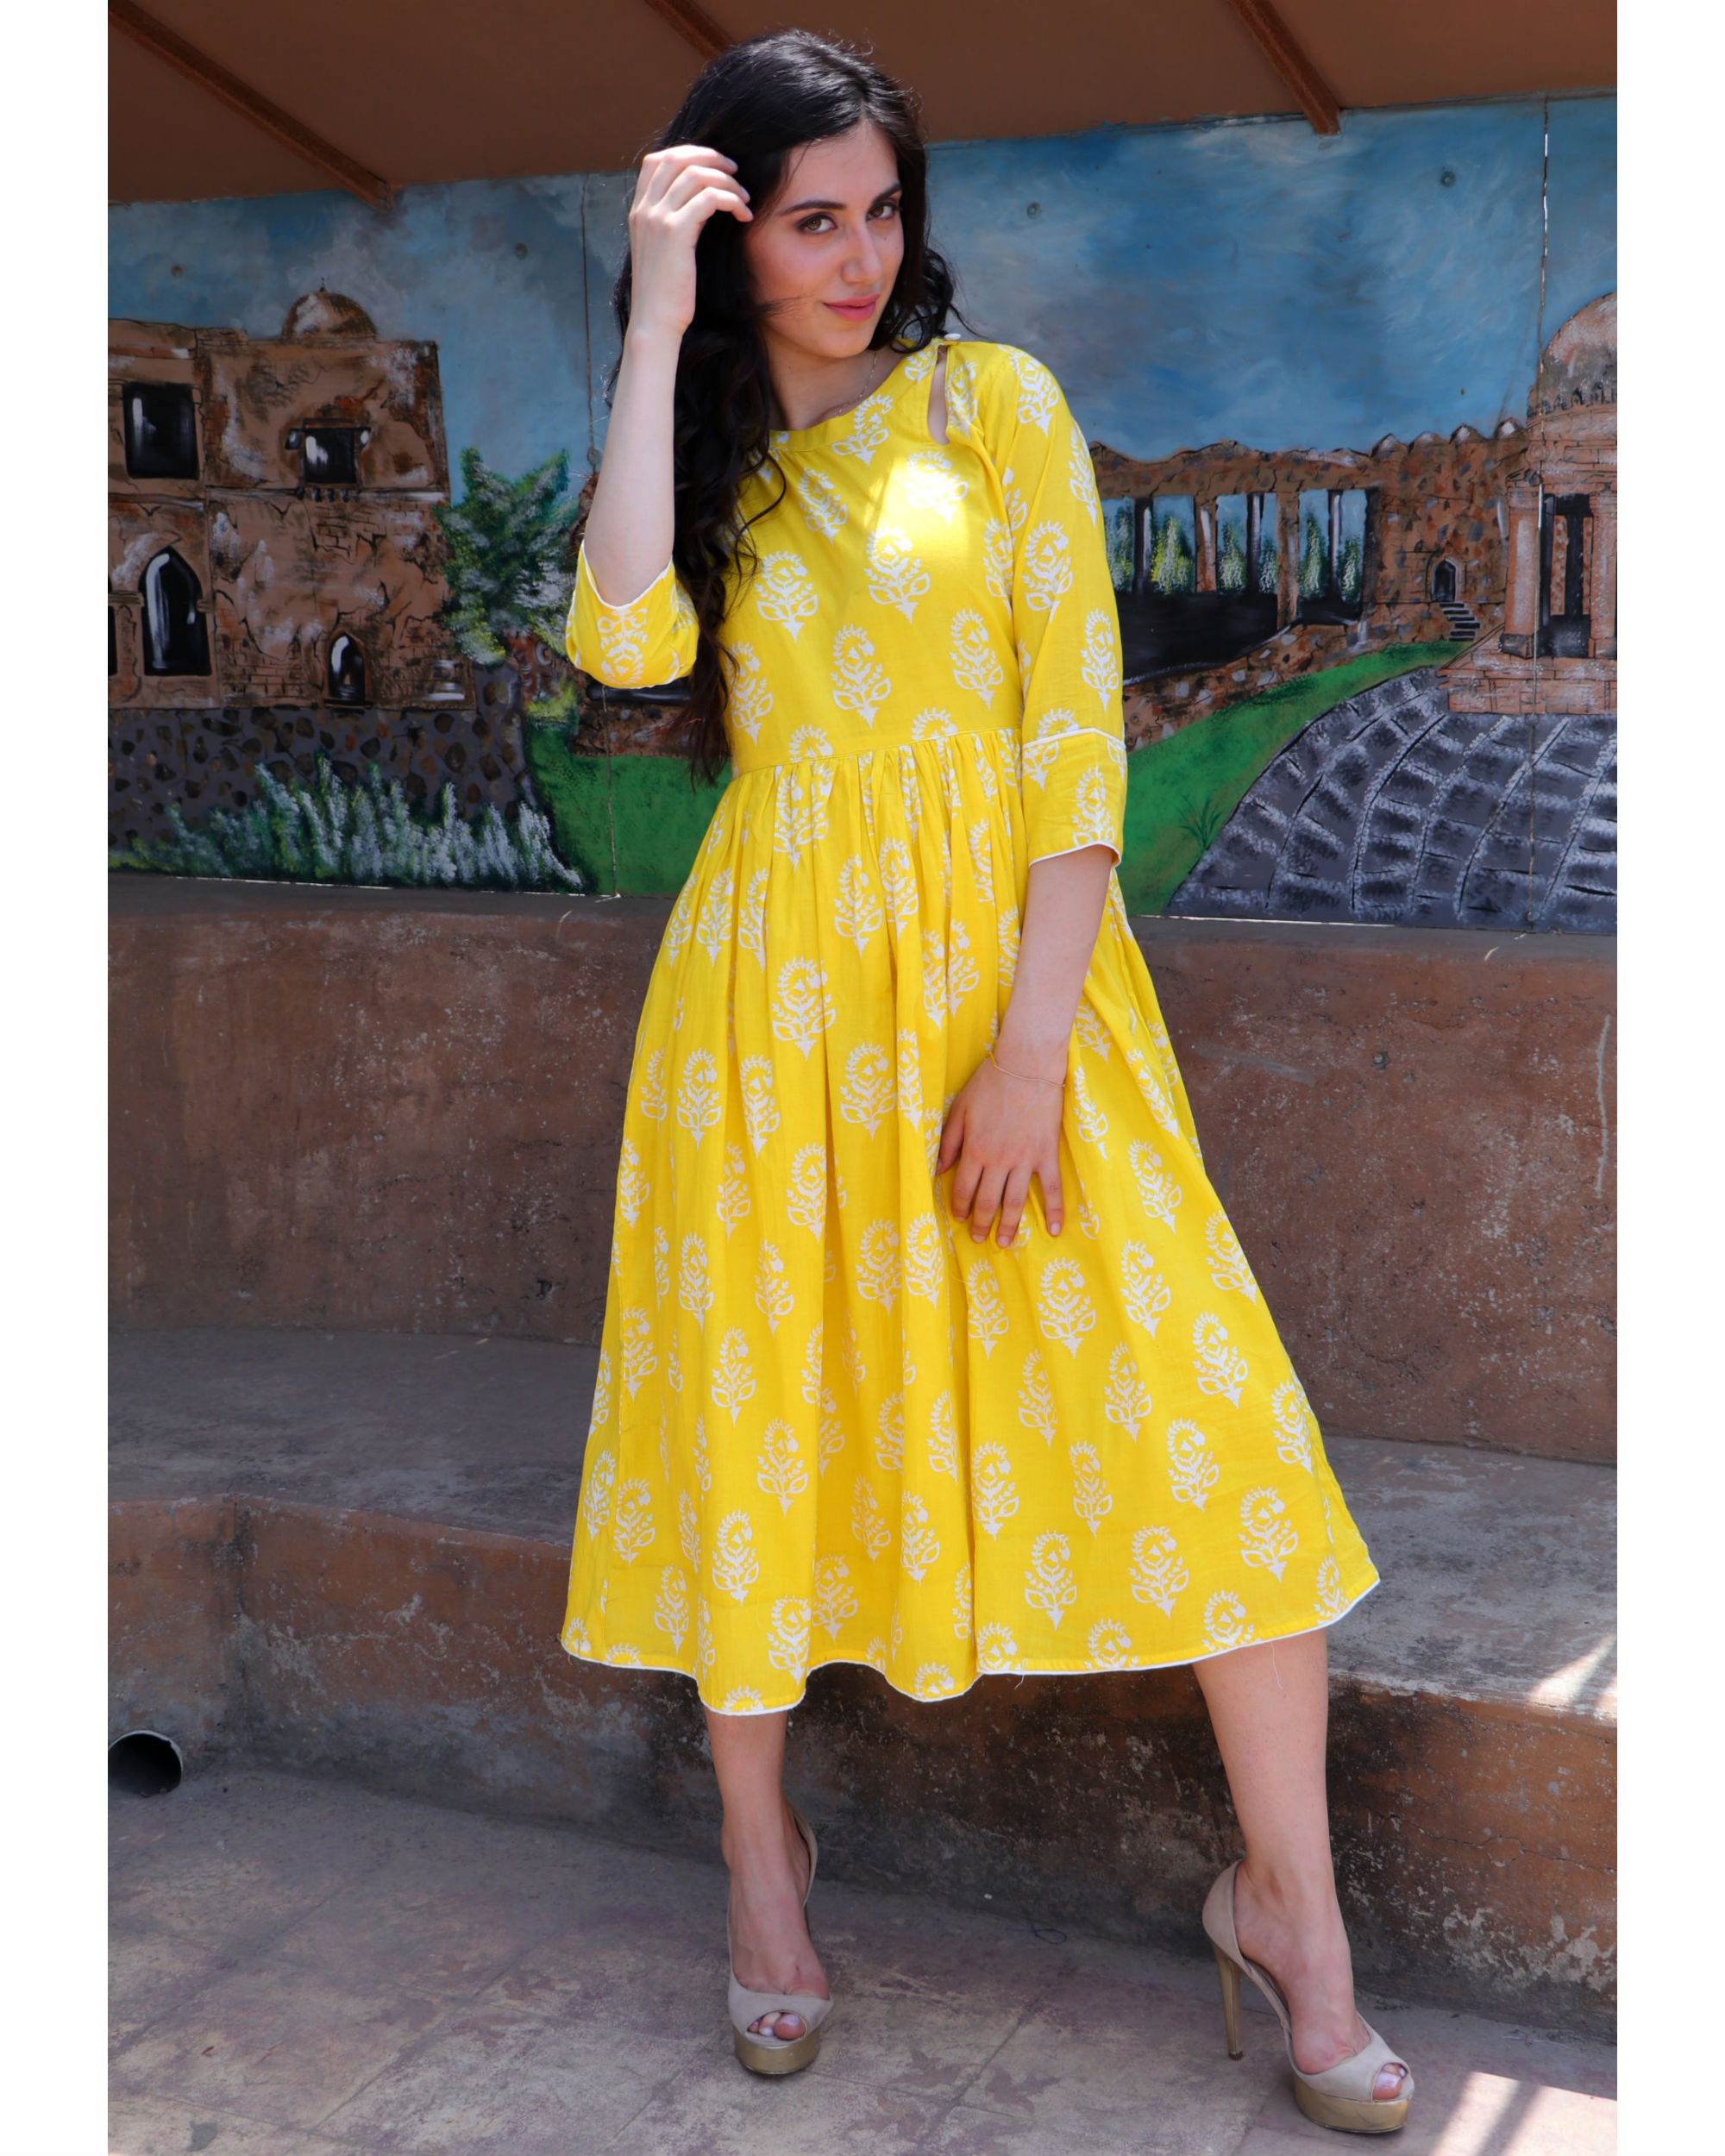 Citrus yellow midi